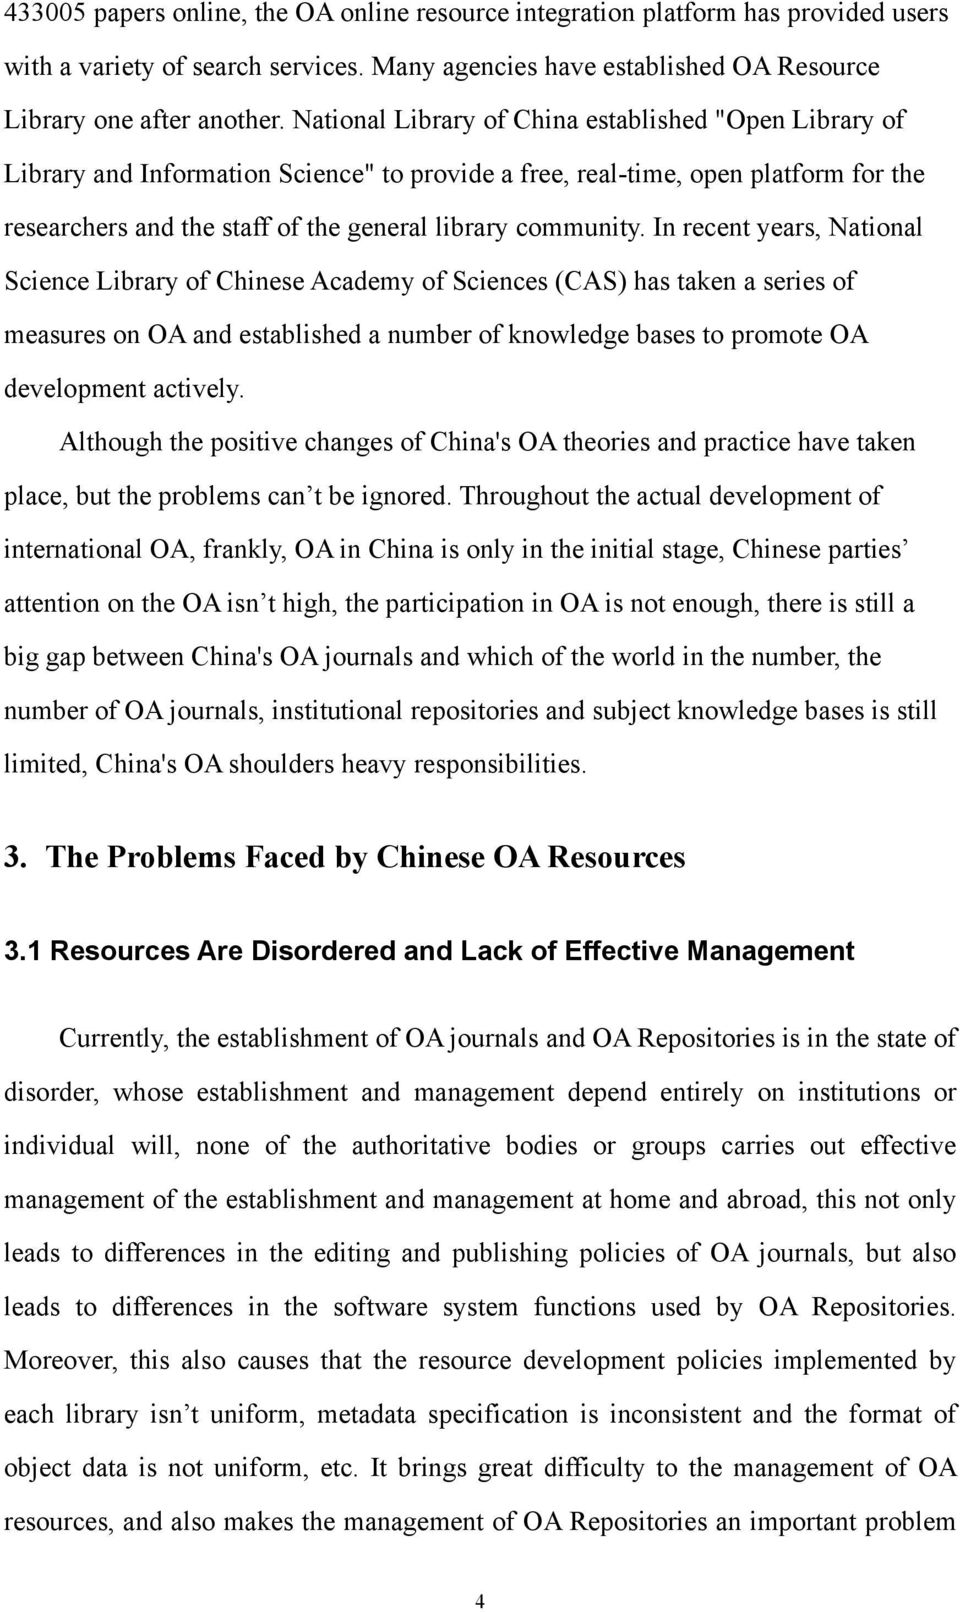 In recent years, National Science Library of Chinese Academy of Sciences (CAS) has taken a series of measures on OA and established a number of knowledge bases to promote OA development actively.